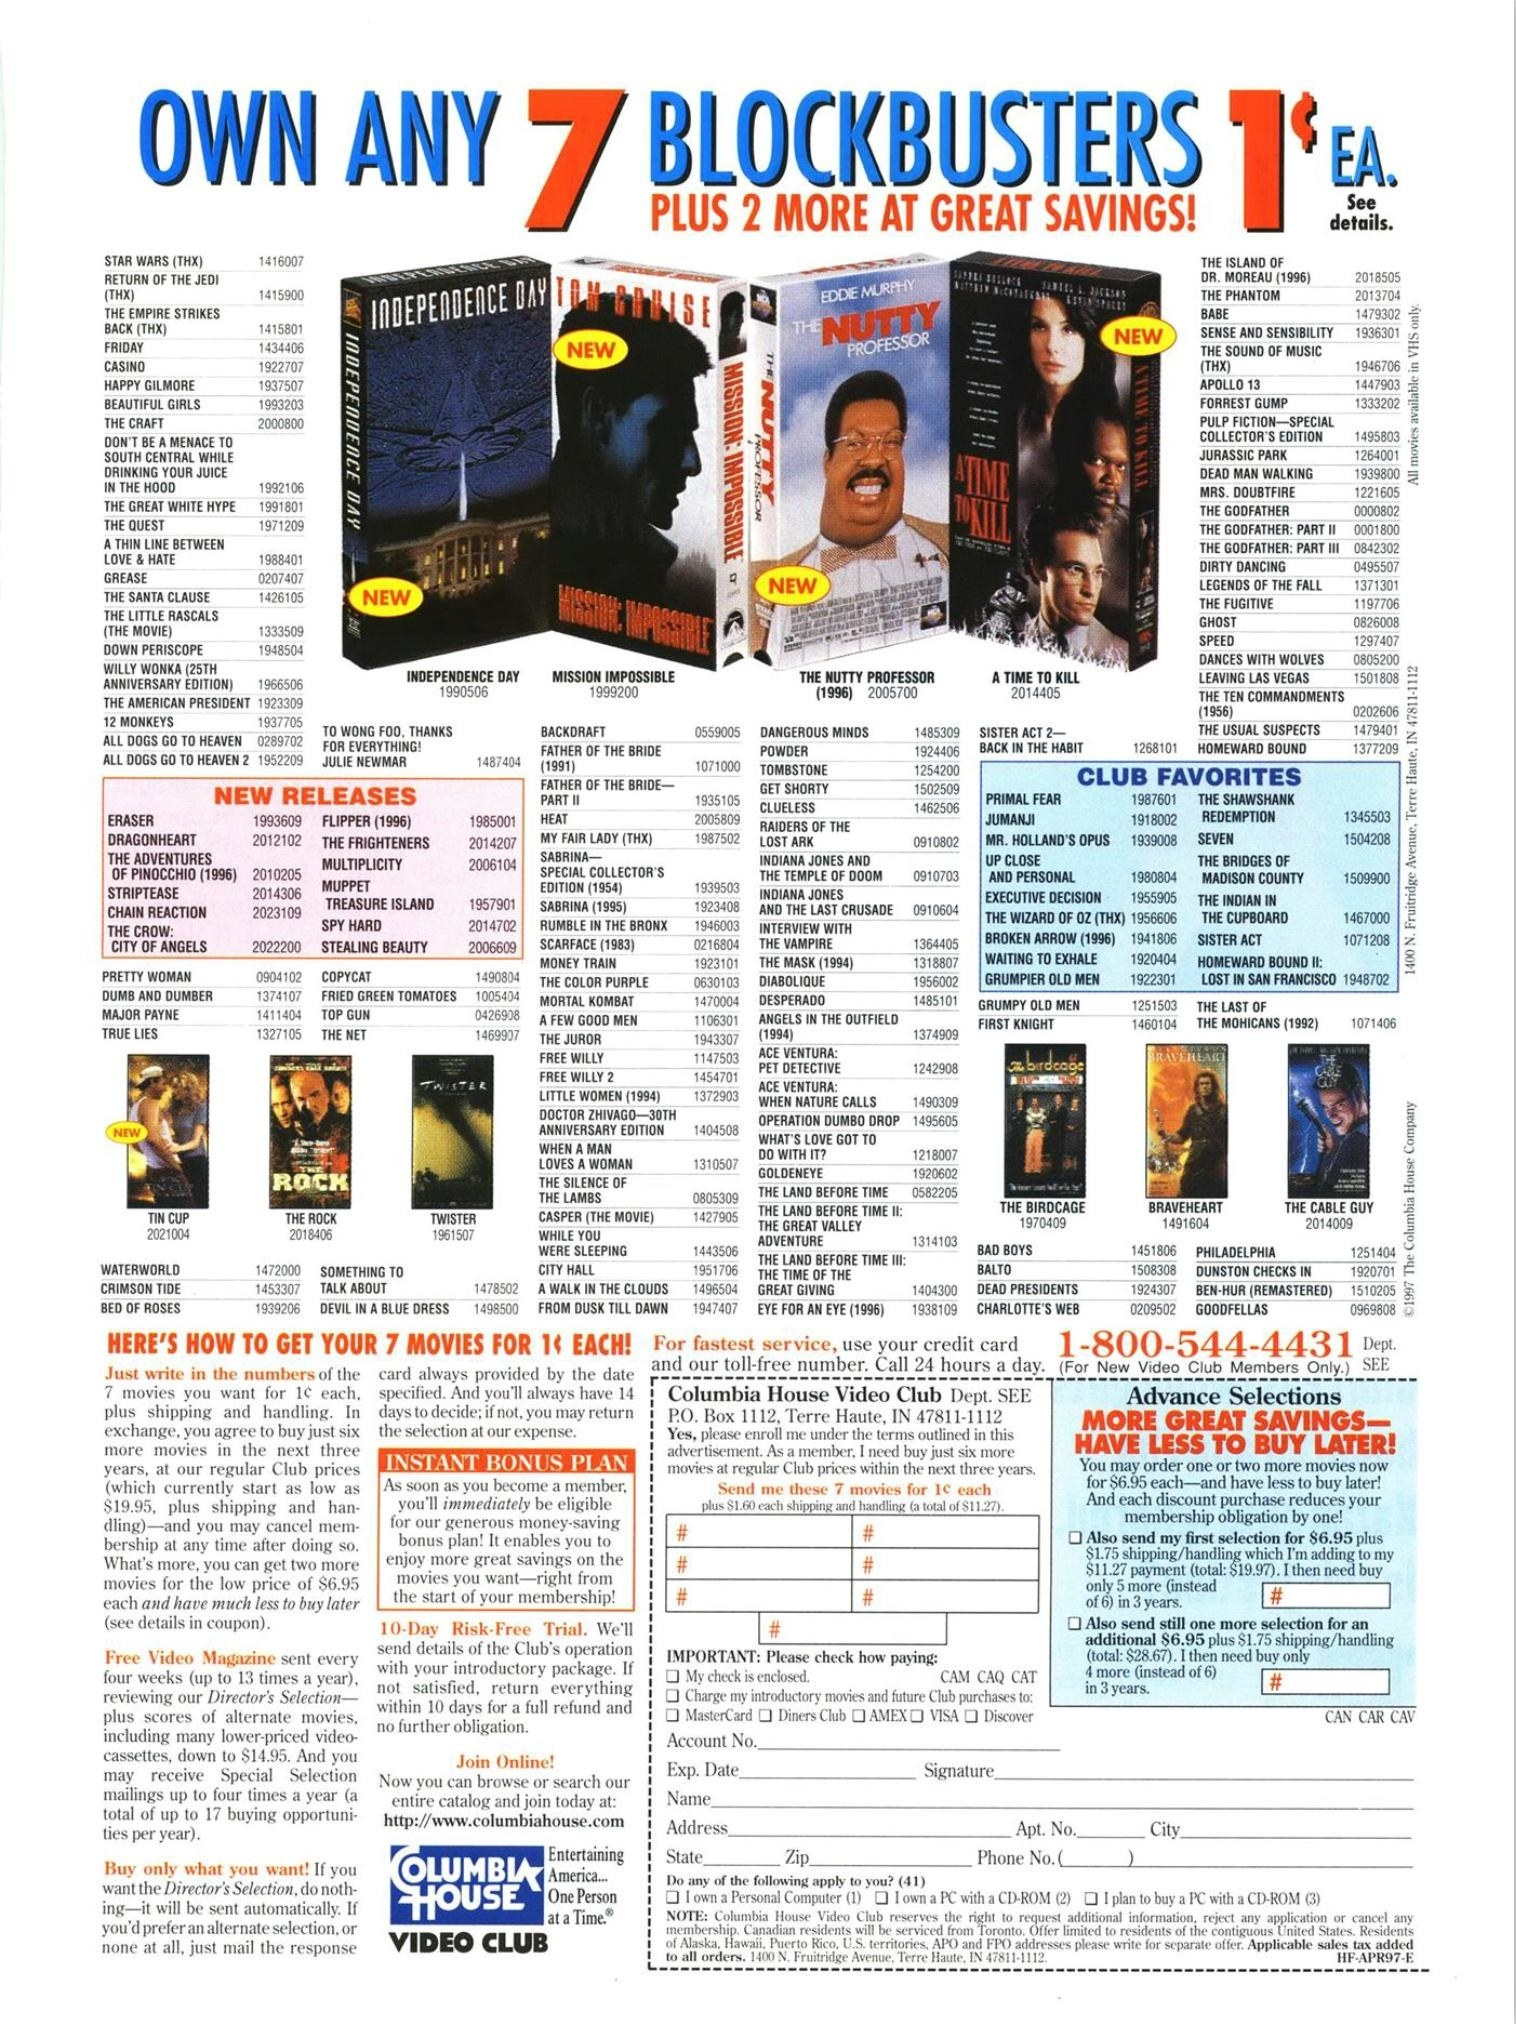 A Columbia House Video Club order form